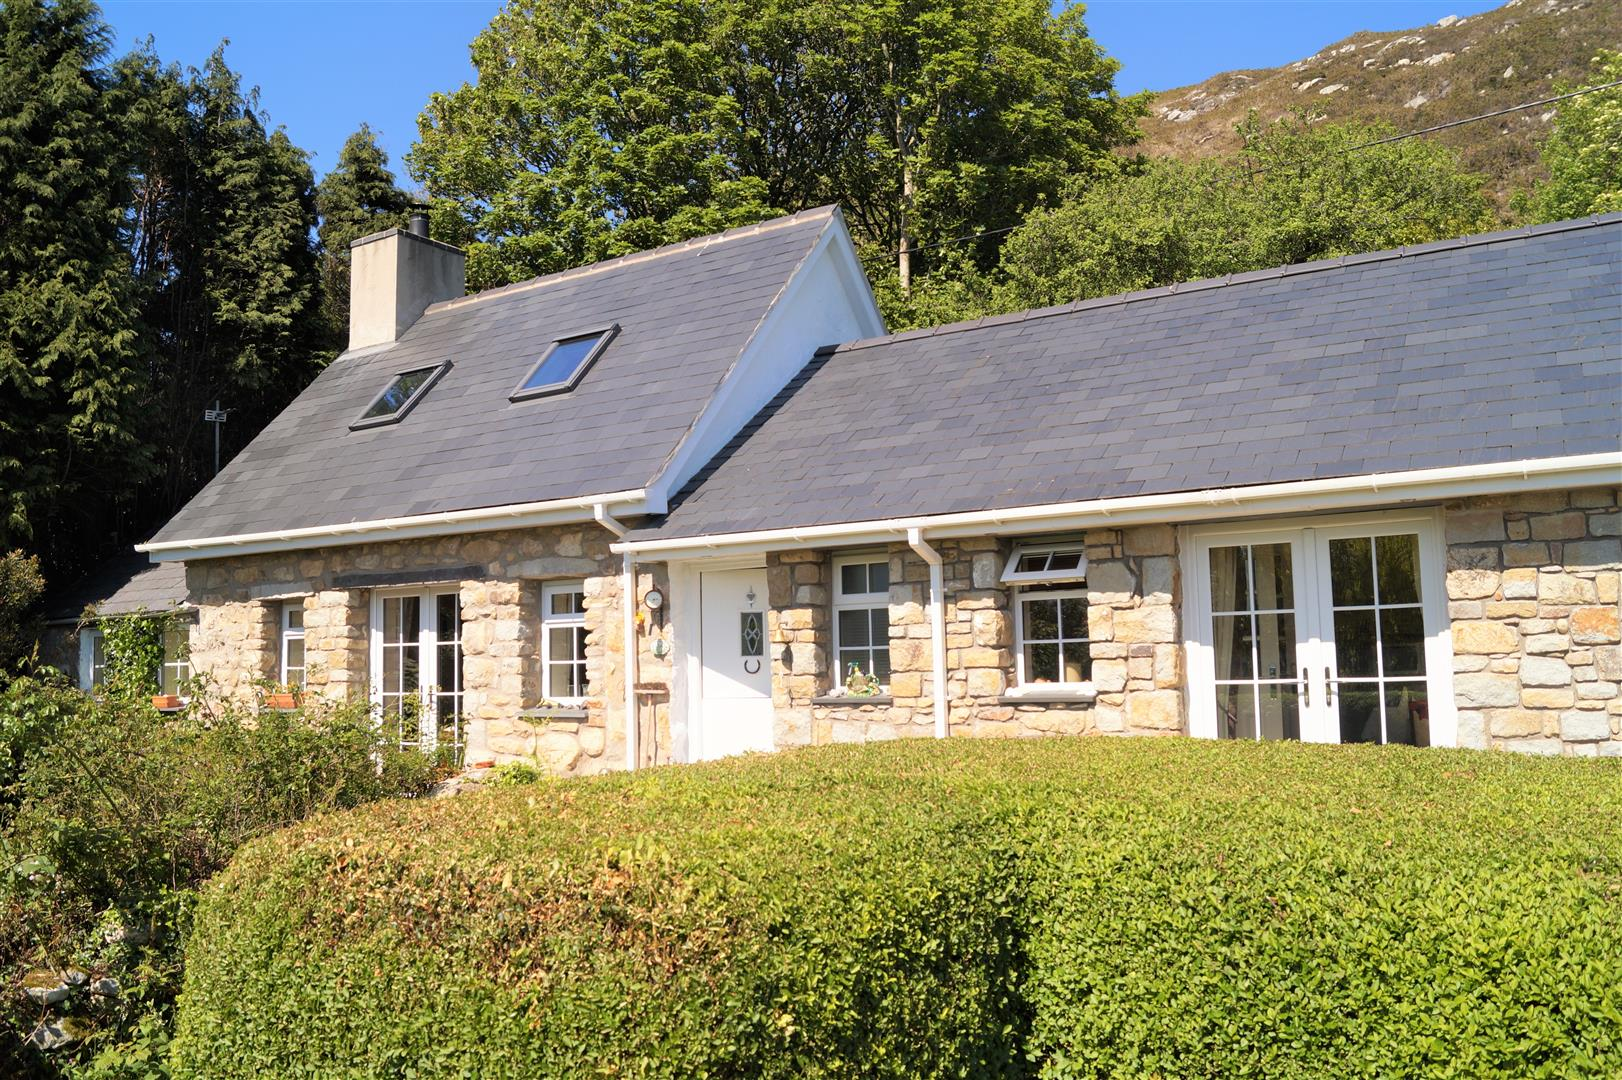 Quarry Road, Llanbedrog - £675,000/Offers in the region of